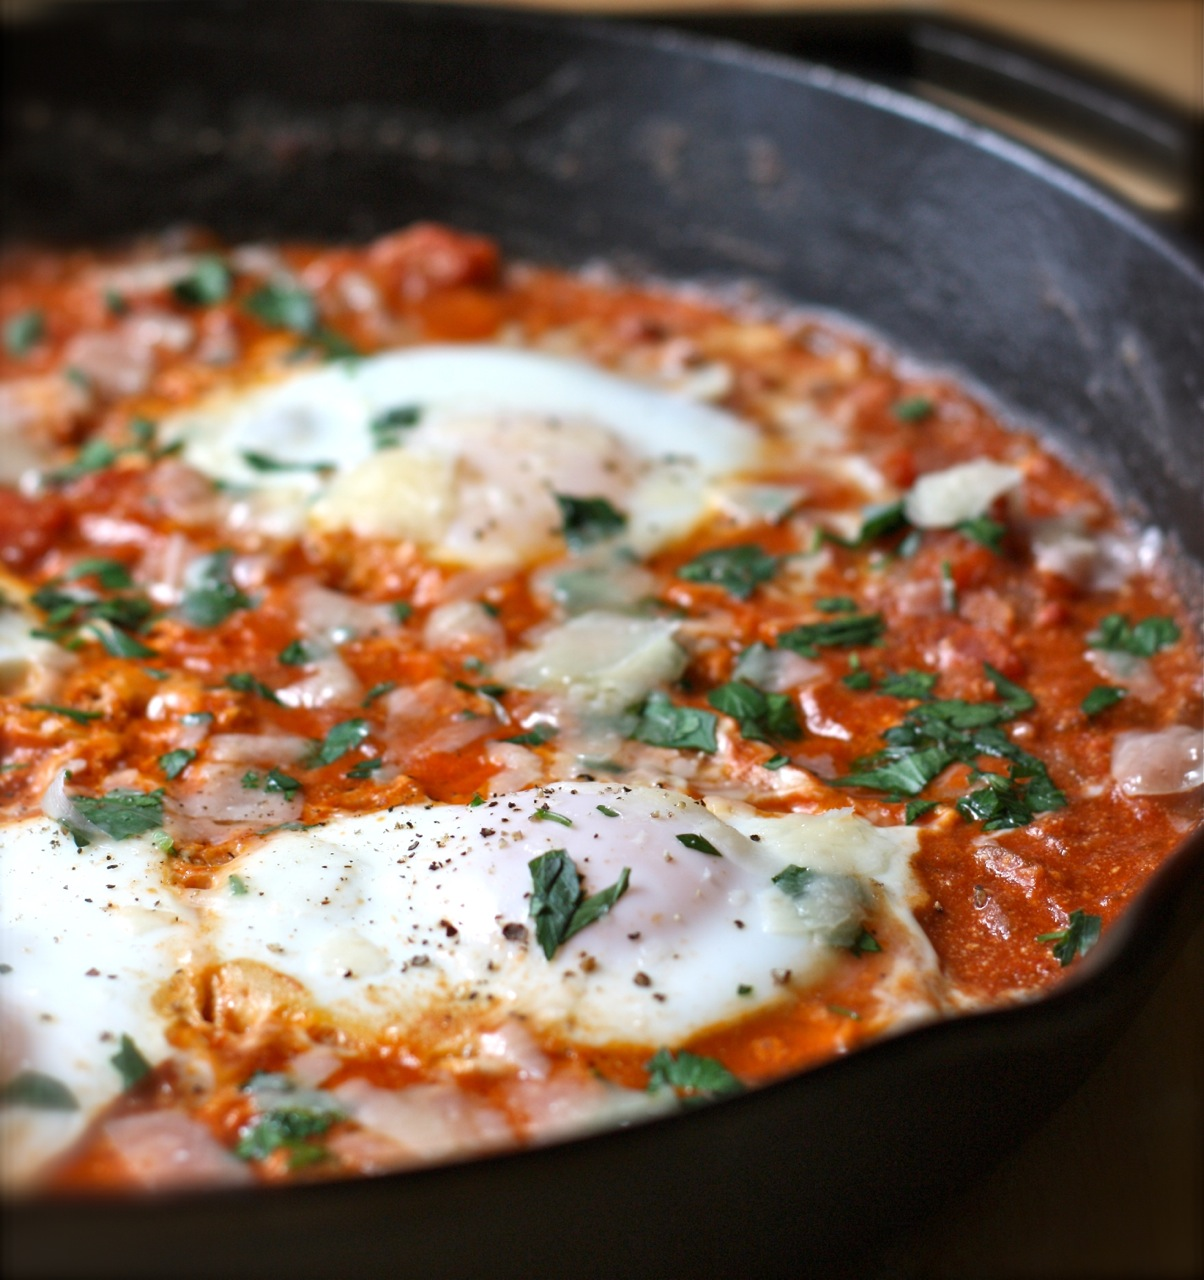 eggs poached in chunky tomato sauce | daisy's world